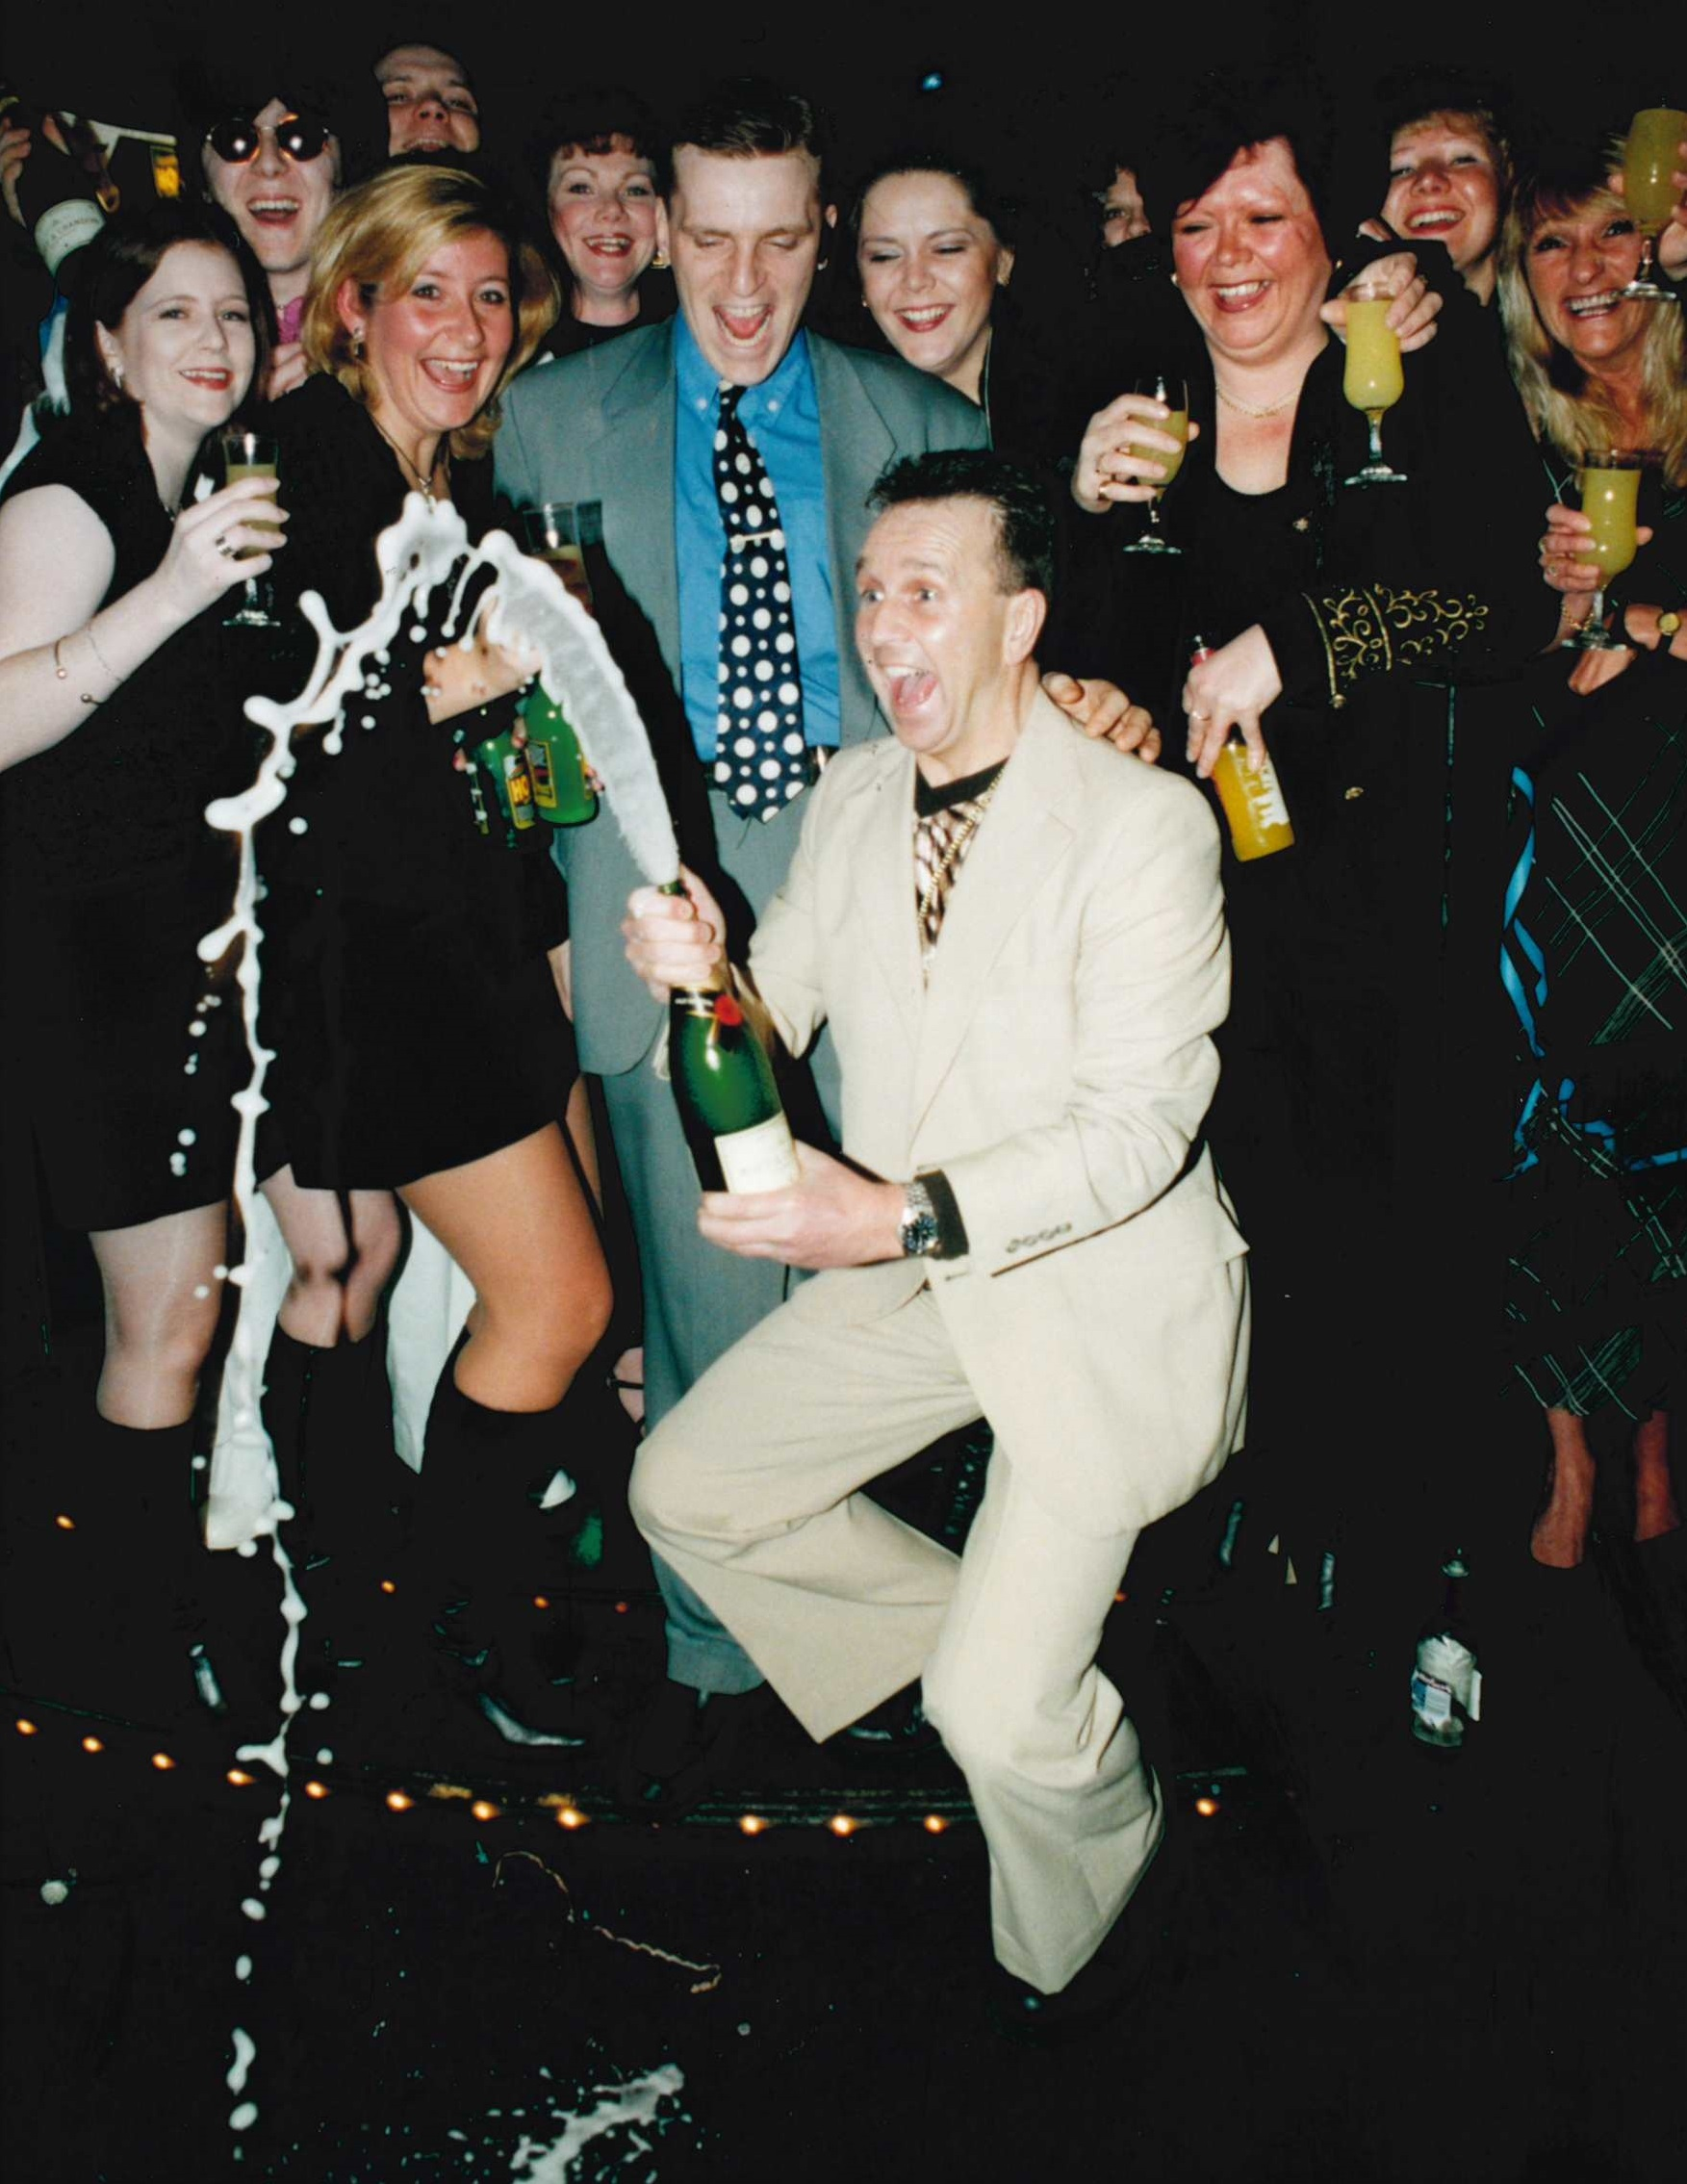 Dj Sandy Martin gets a party started at Kaos in February of 1997